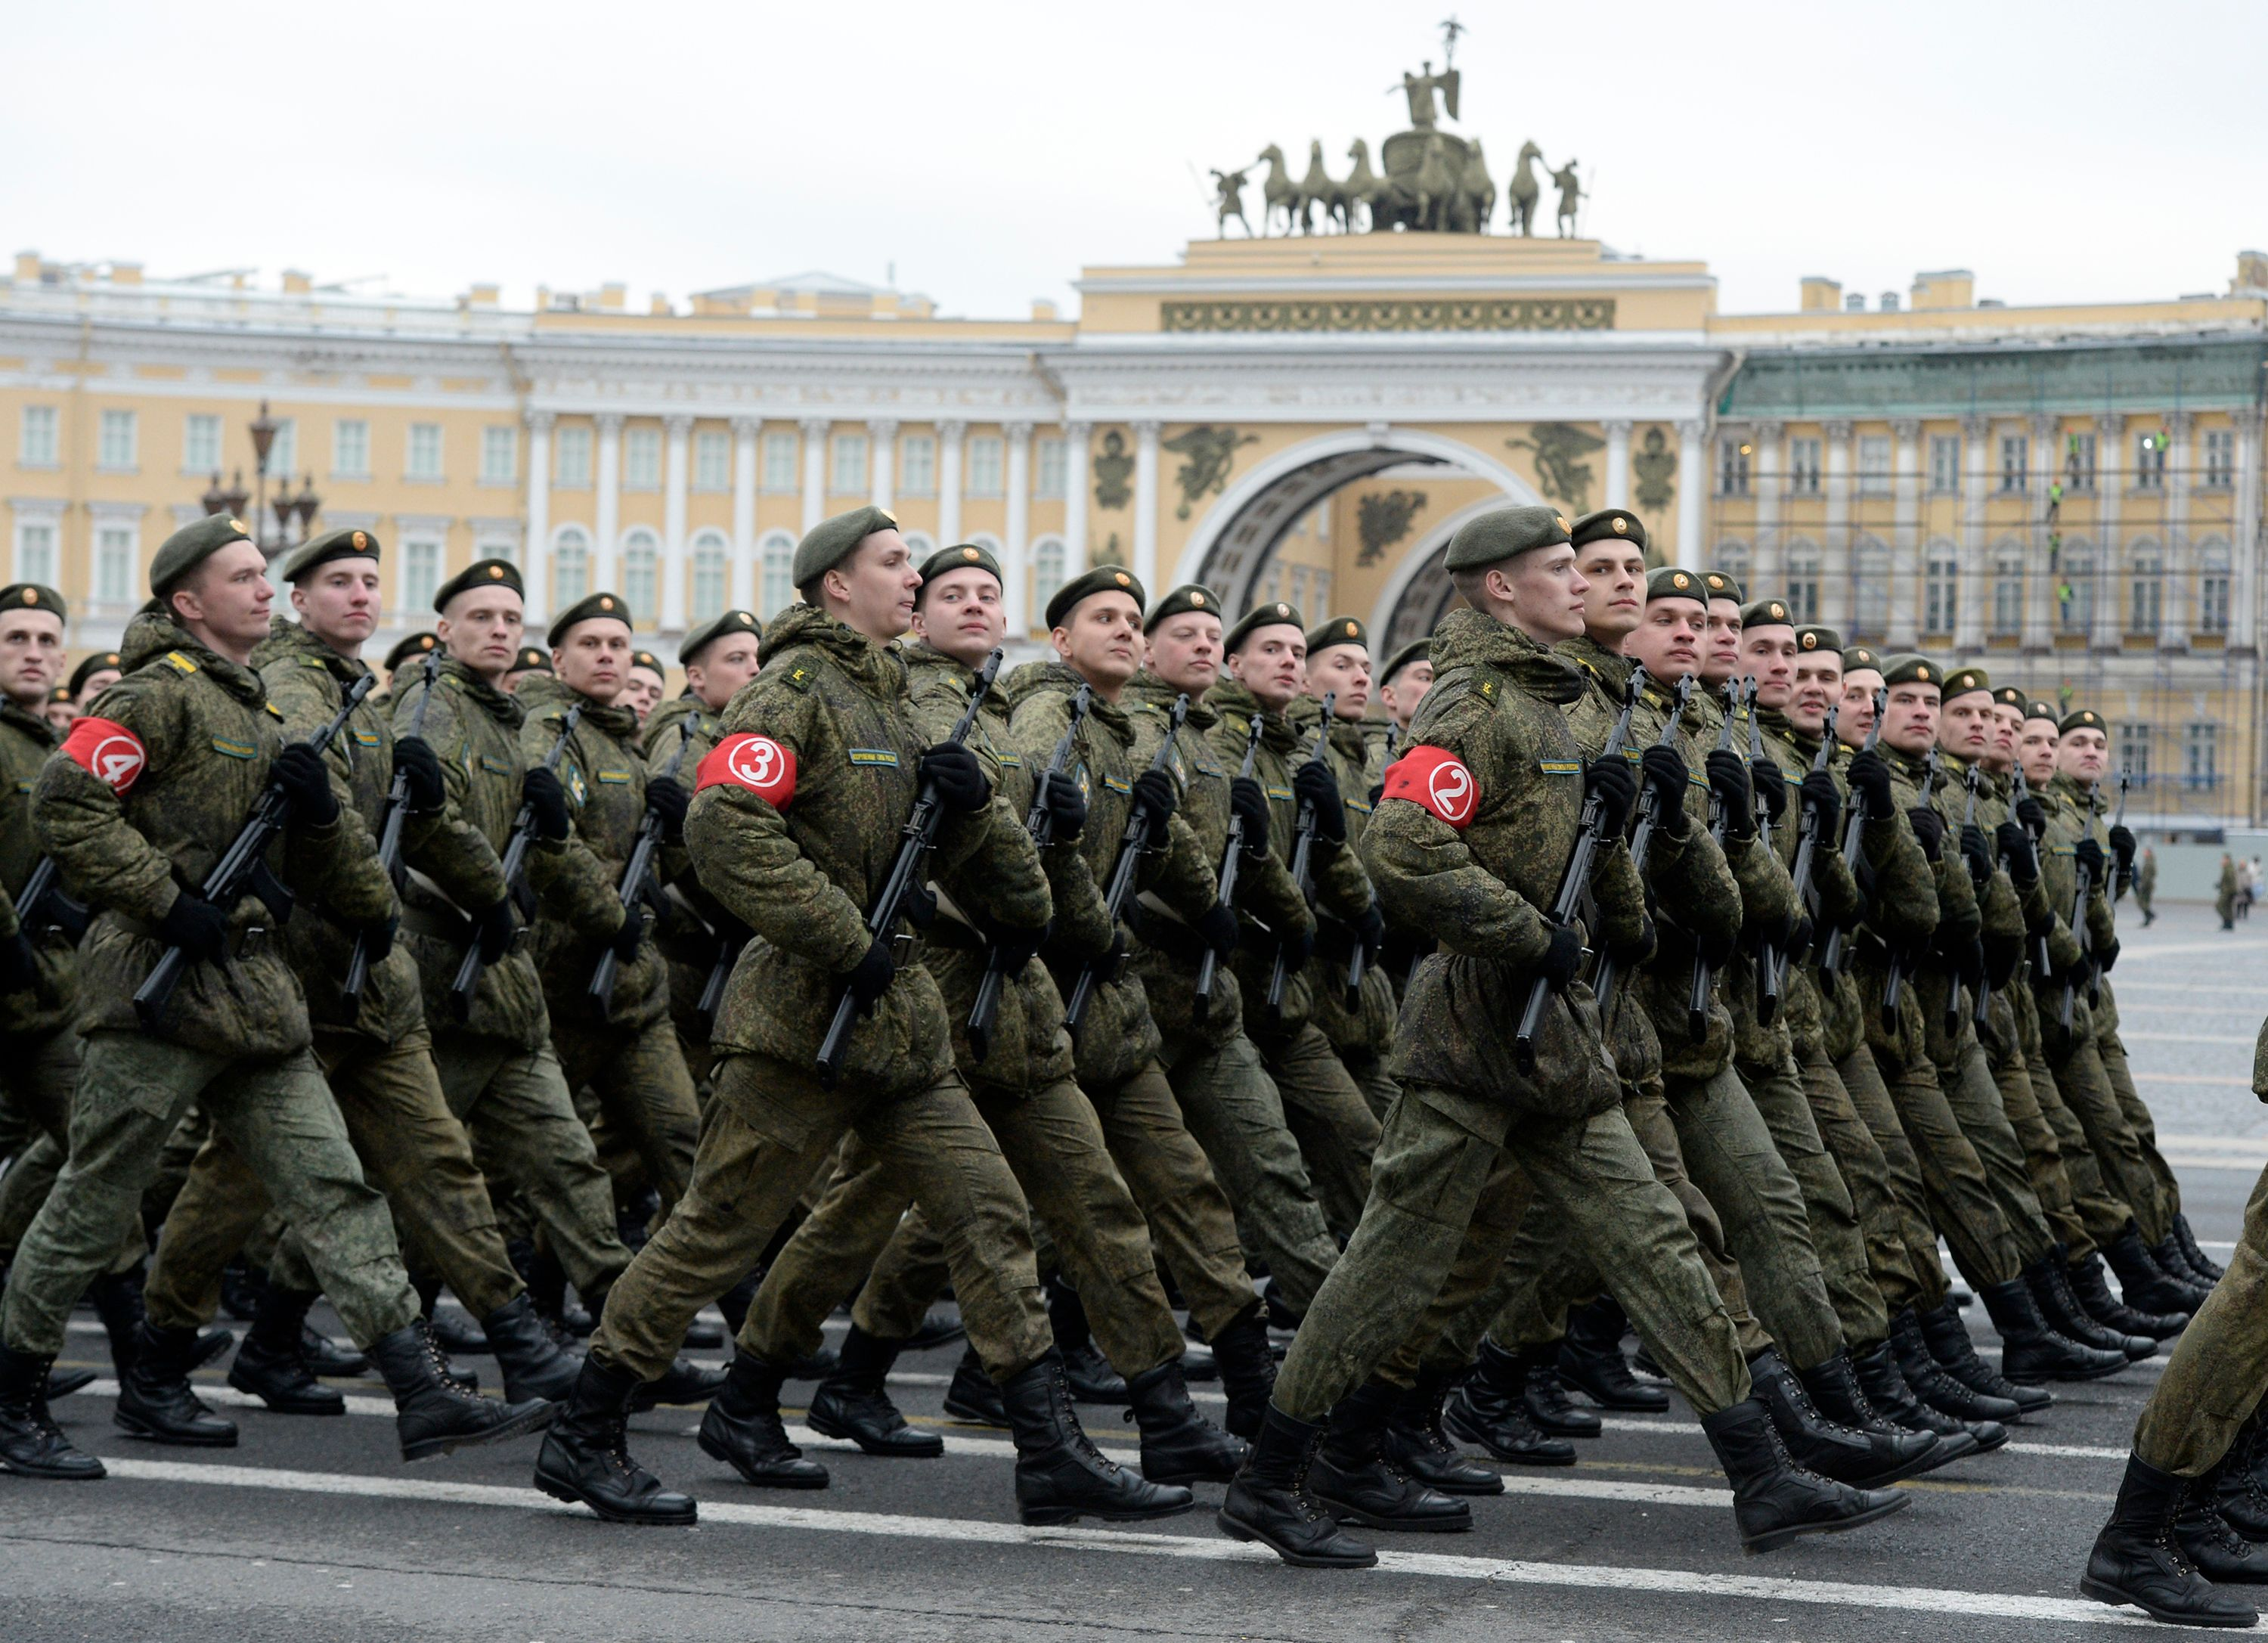 Russian military cadets march on Dvortsovaya Square